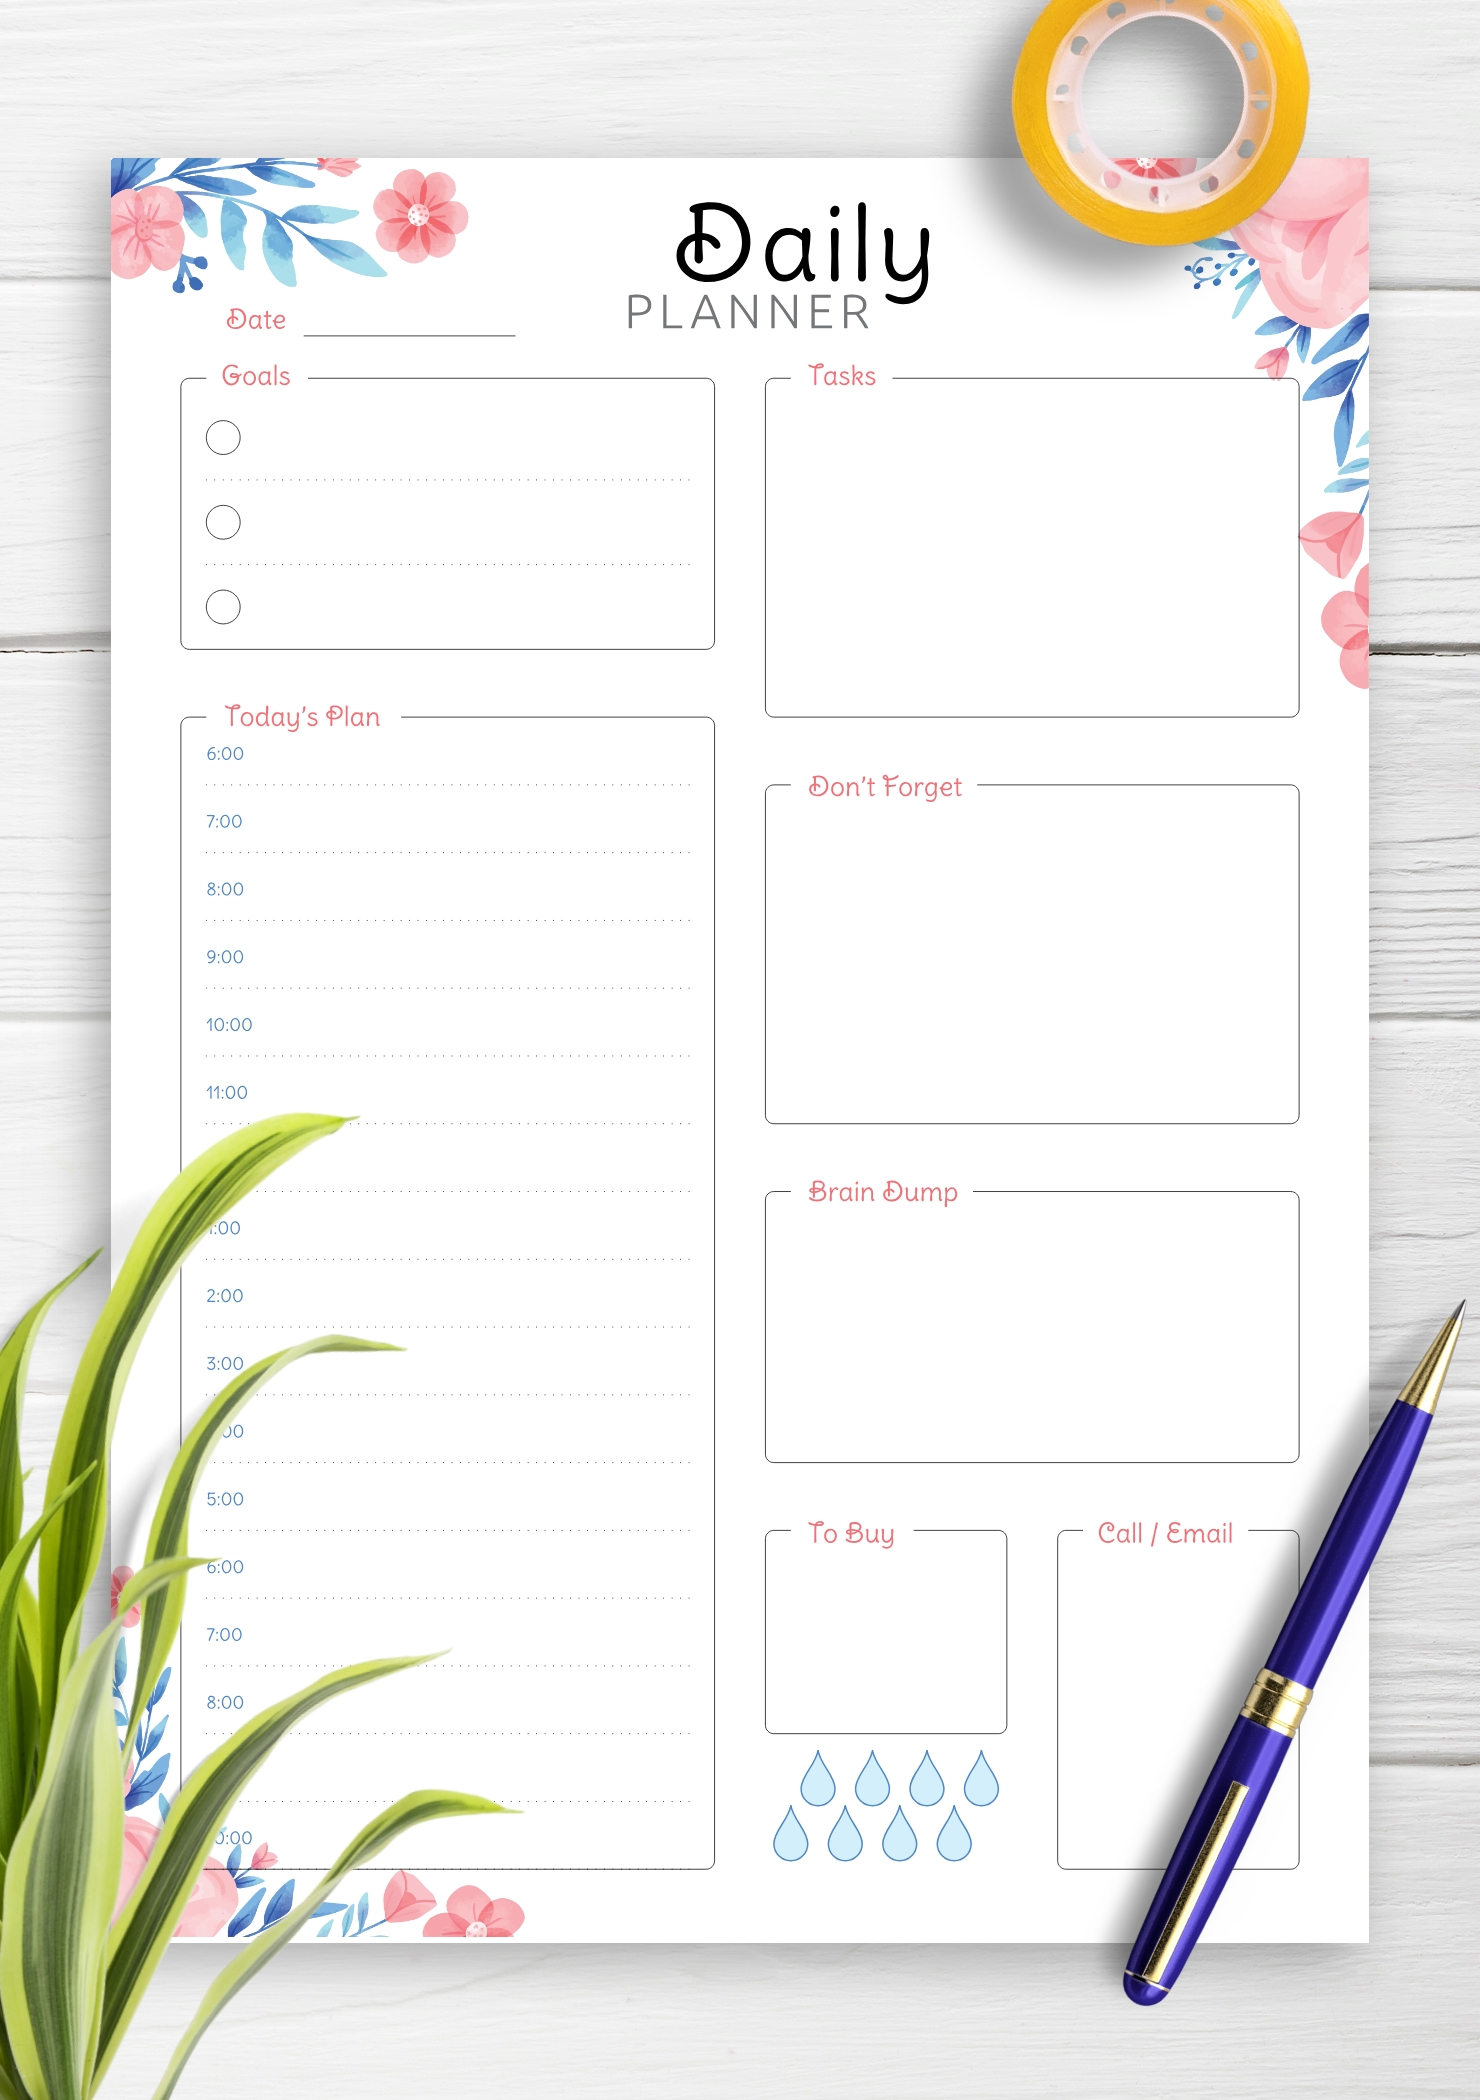 Download Printable Hourly Planner With Daily Tasks & Goals Pdf-Calendar January 2021 Hourly Daily Task List Template